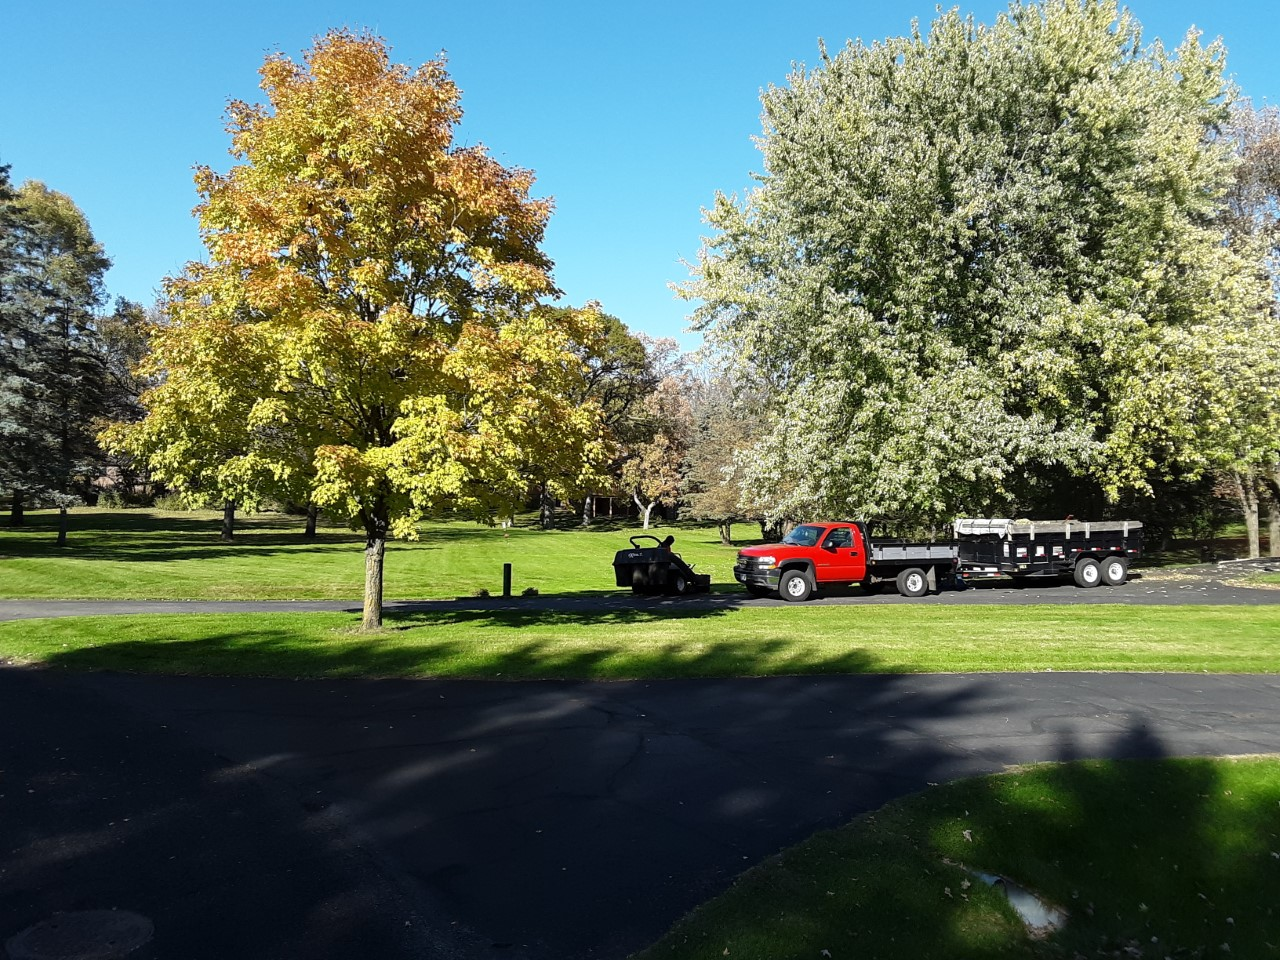 We offer residential & commercial landscape maintenance in the St. Cloud, MN area